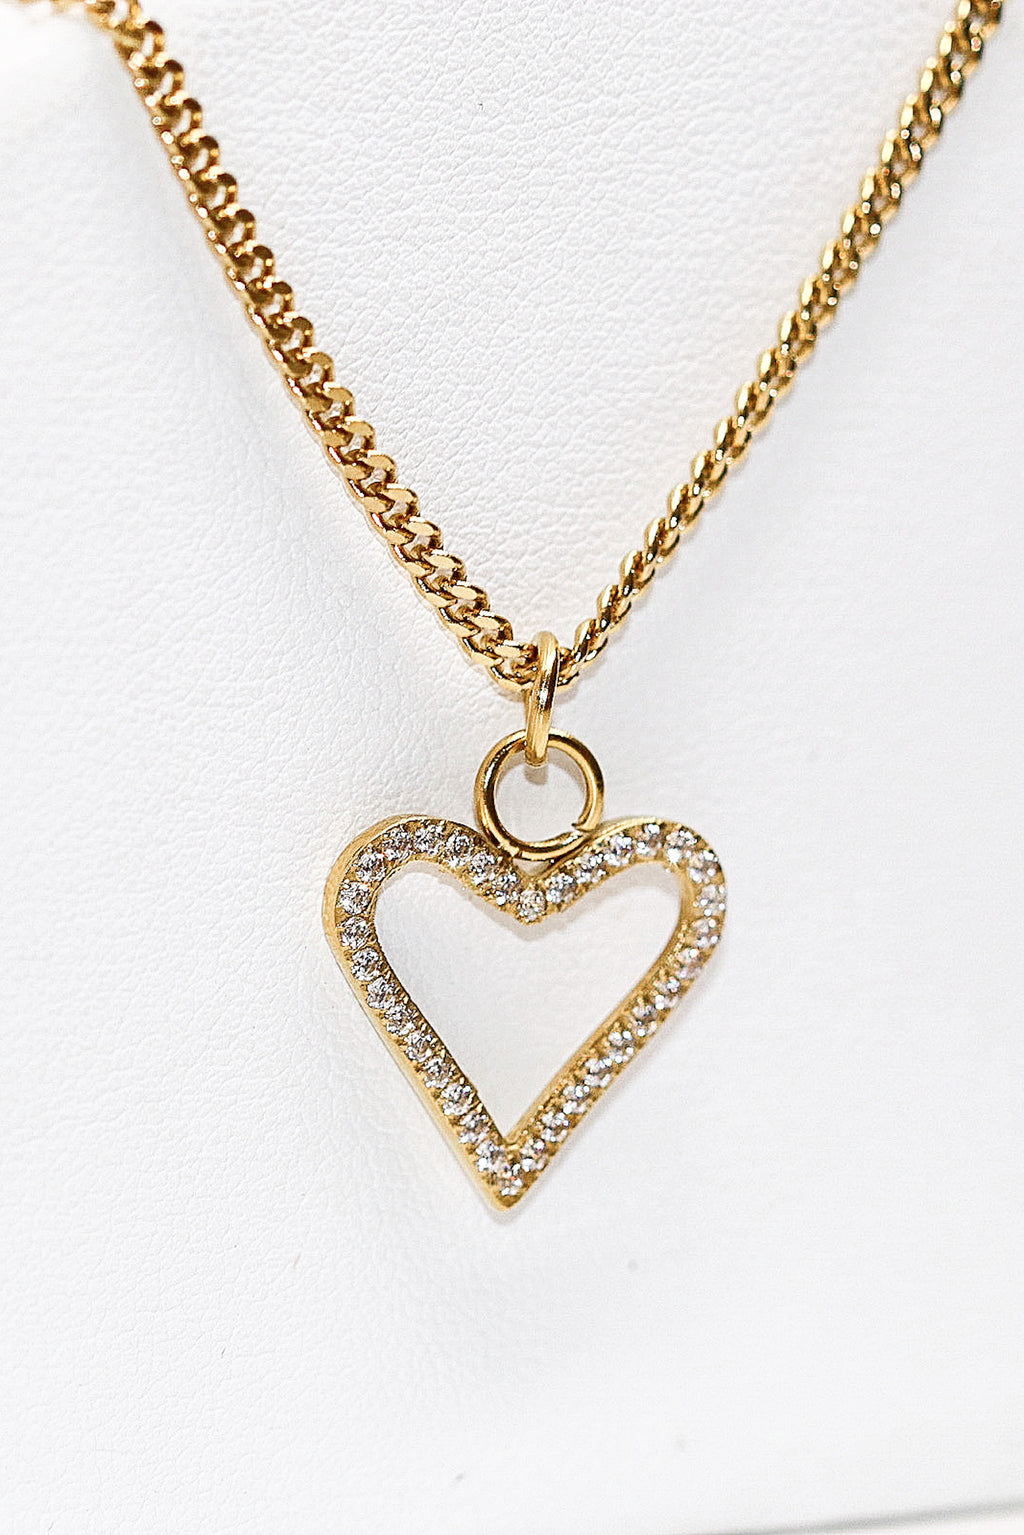 VALENTINES CHAIN ♡ - Taimana Boutique